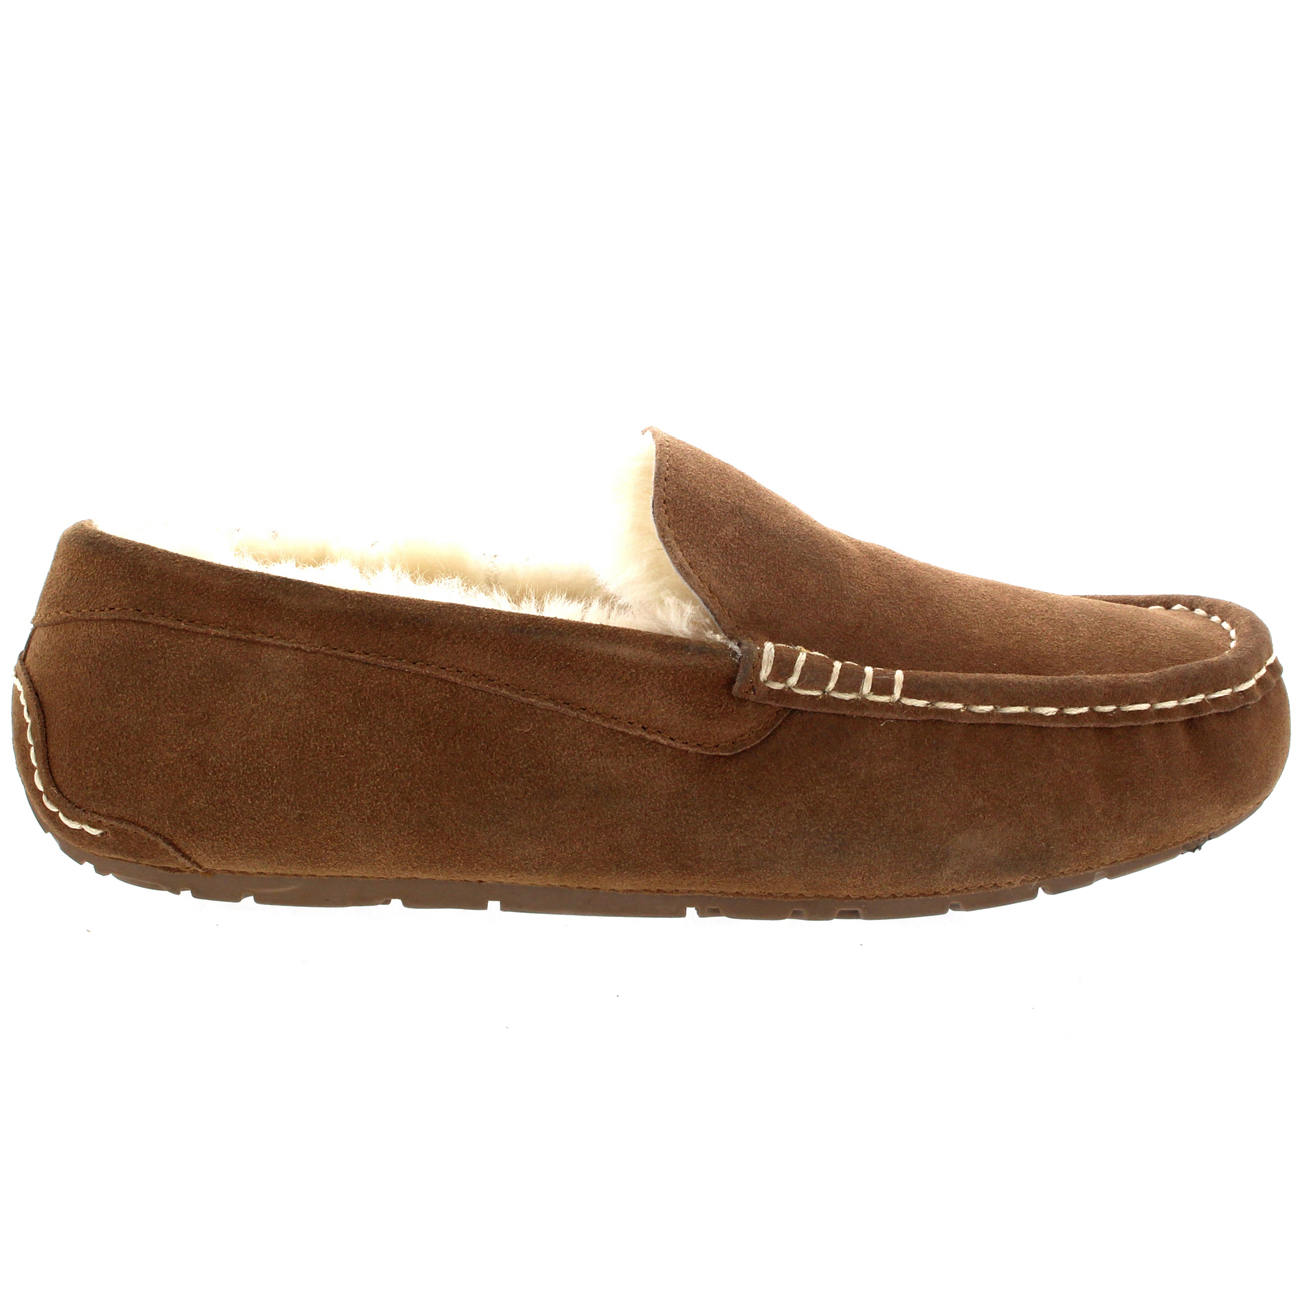 Showing the most relevant results. See all results for mens moccasins slippers.